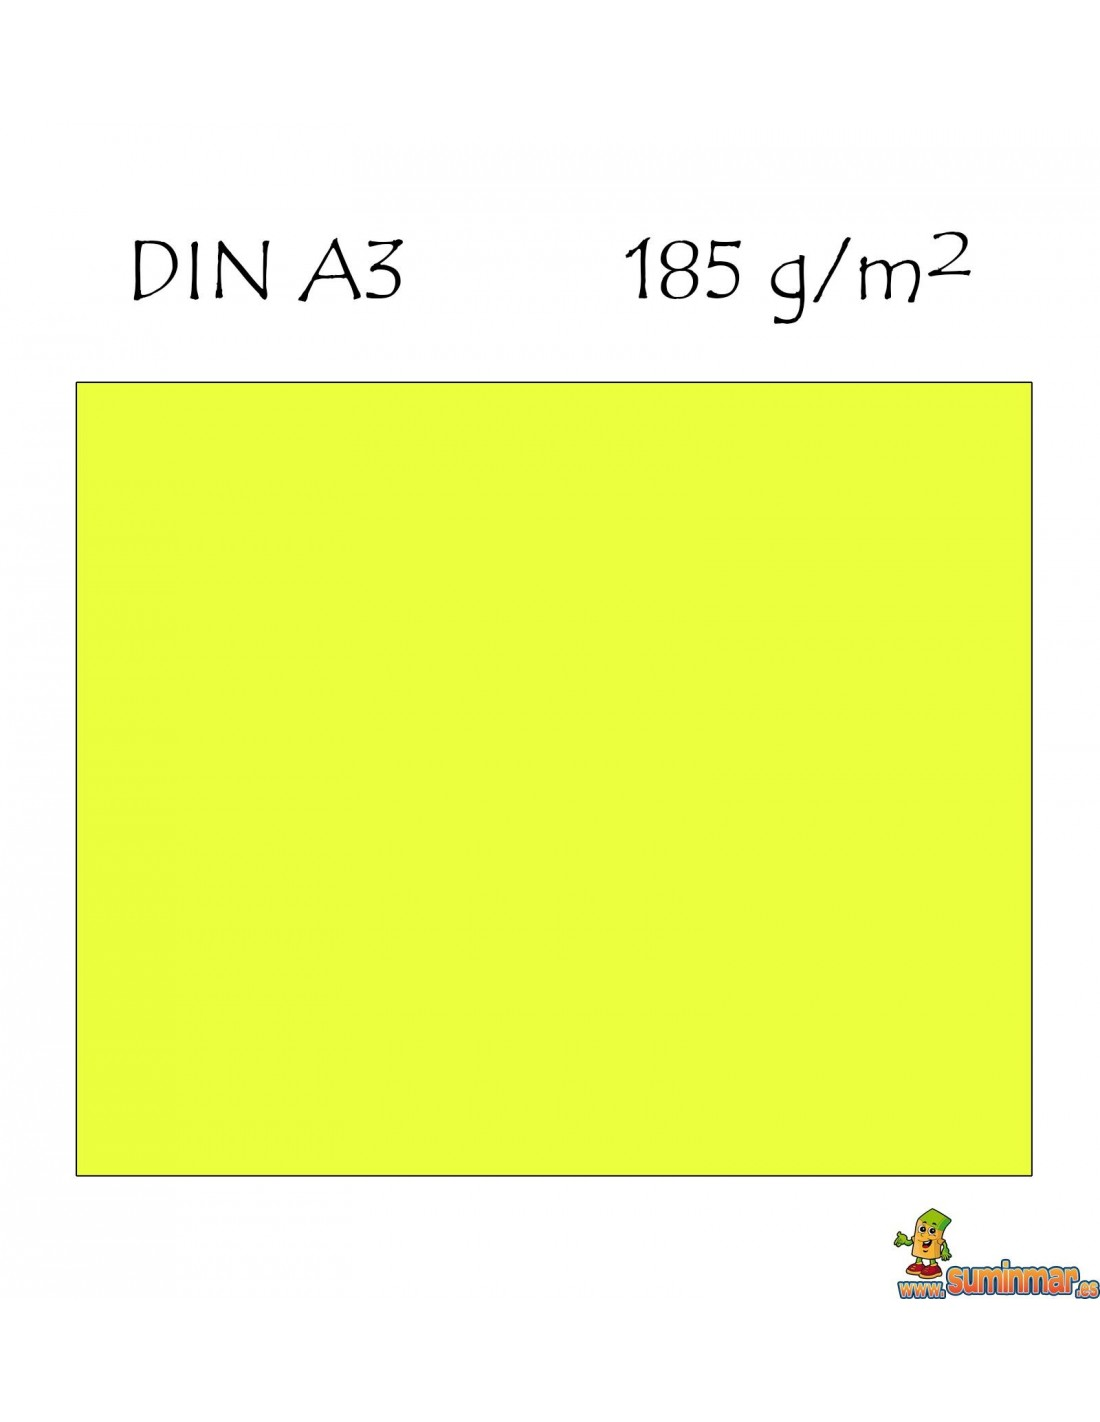 Couchtisch Amarillo Din A3 Gallery Of Din A3 With Din A3 Interesting Plakat Din A